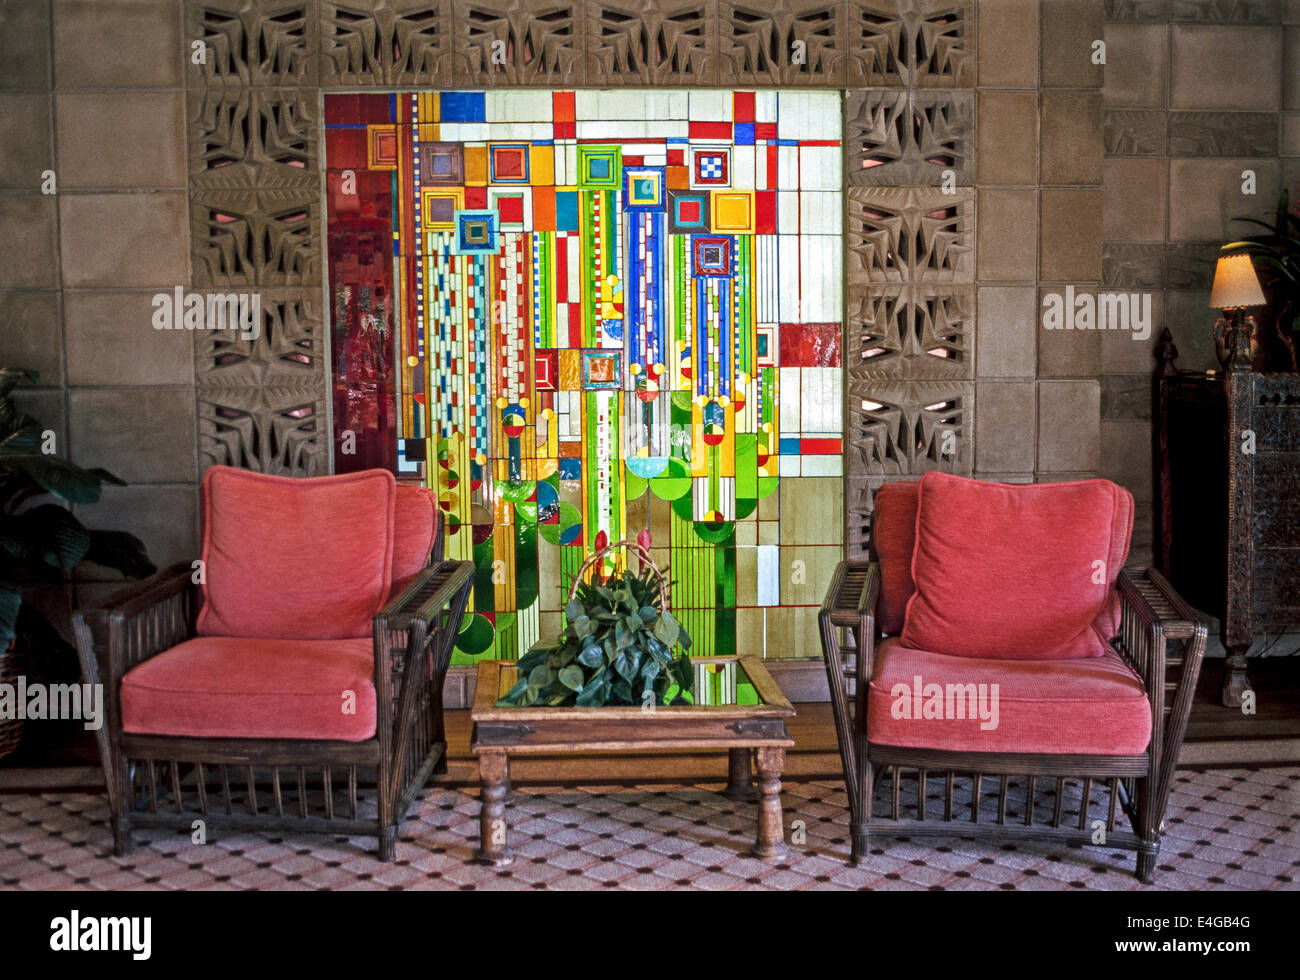 stock photo this colorful 1970s window by architect frank lloyd wright greets guests at the arizona biltmore hotel u0026 spa in phoenix